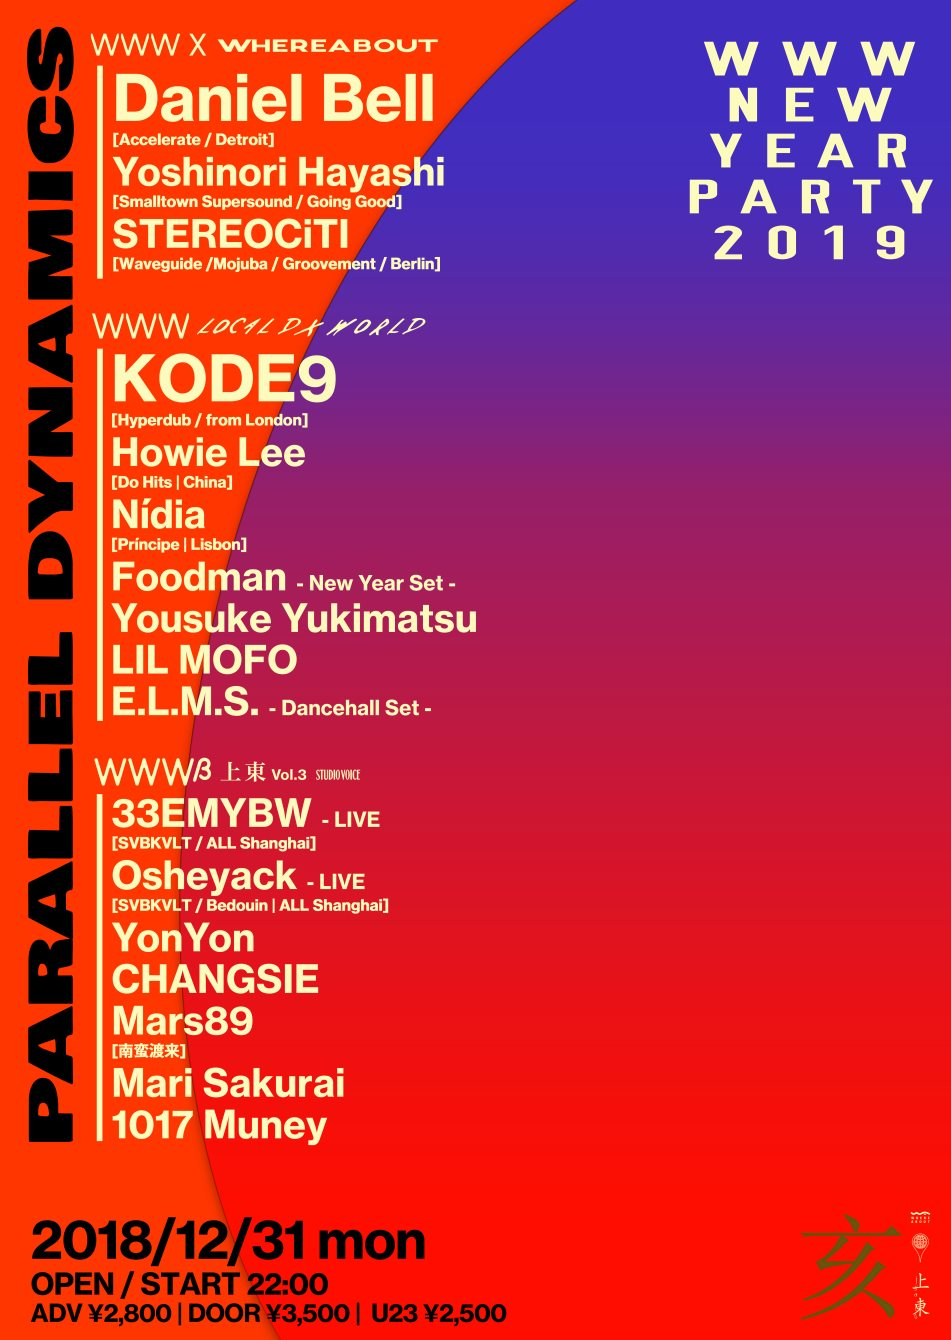 WWW New Year Party 2019 - Parallel Dynamics - - Flyer front